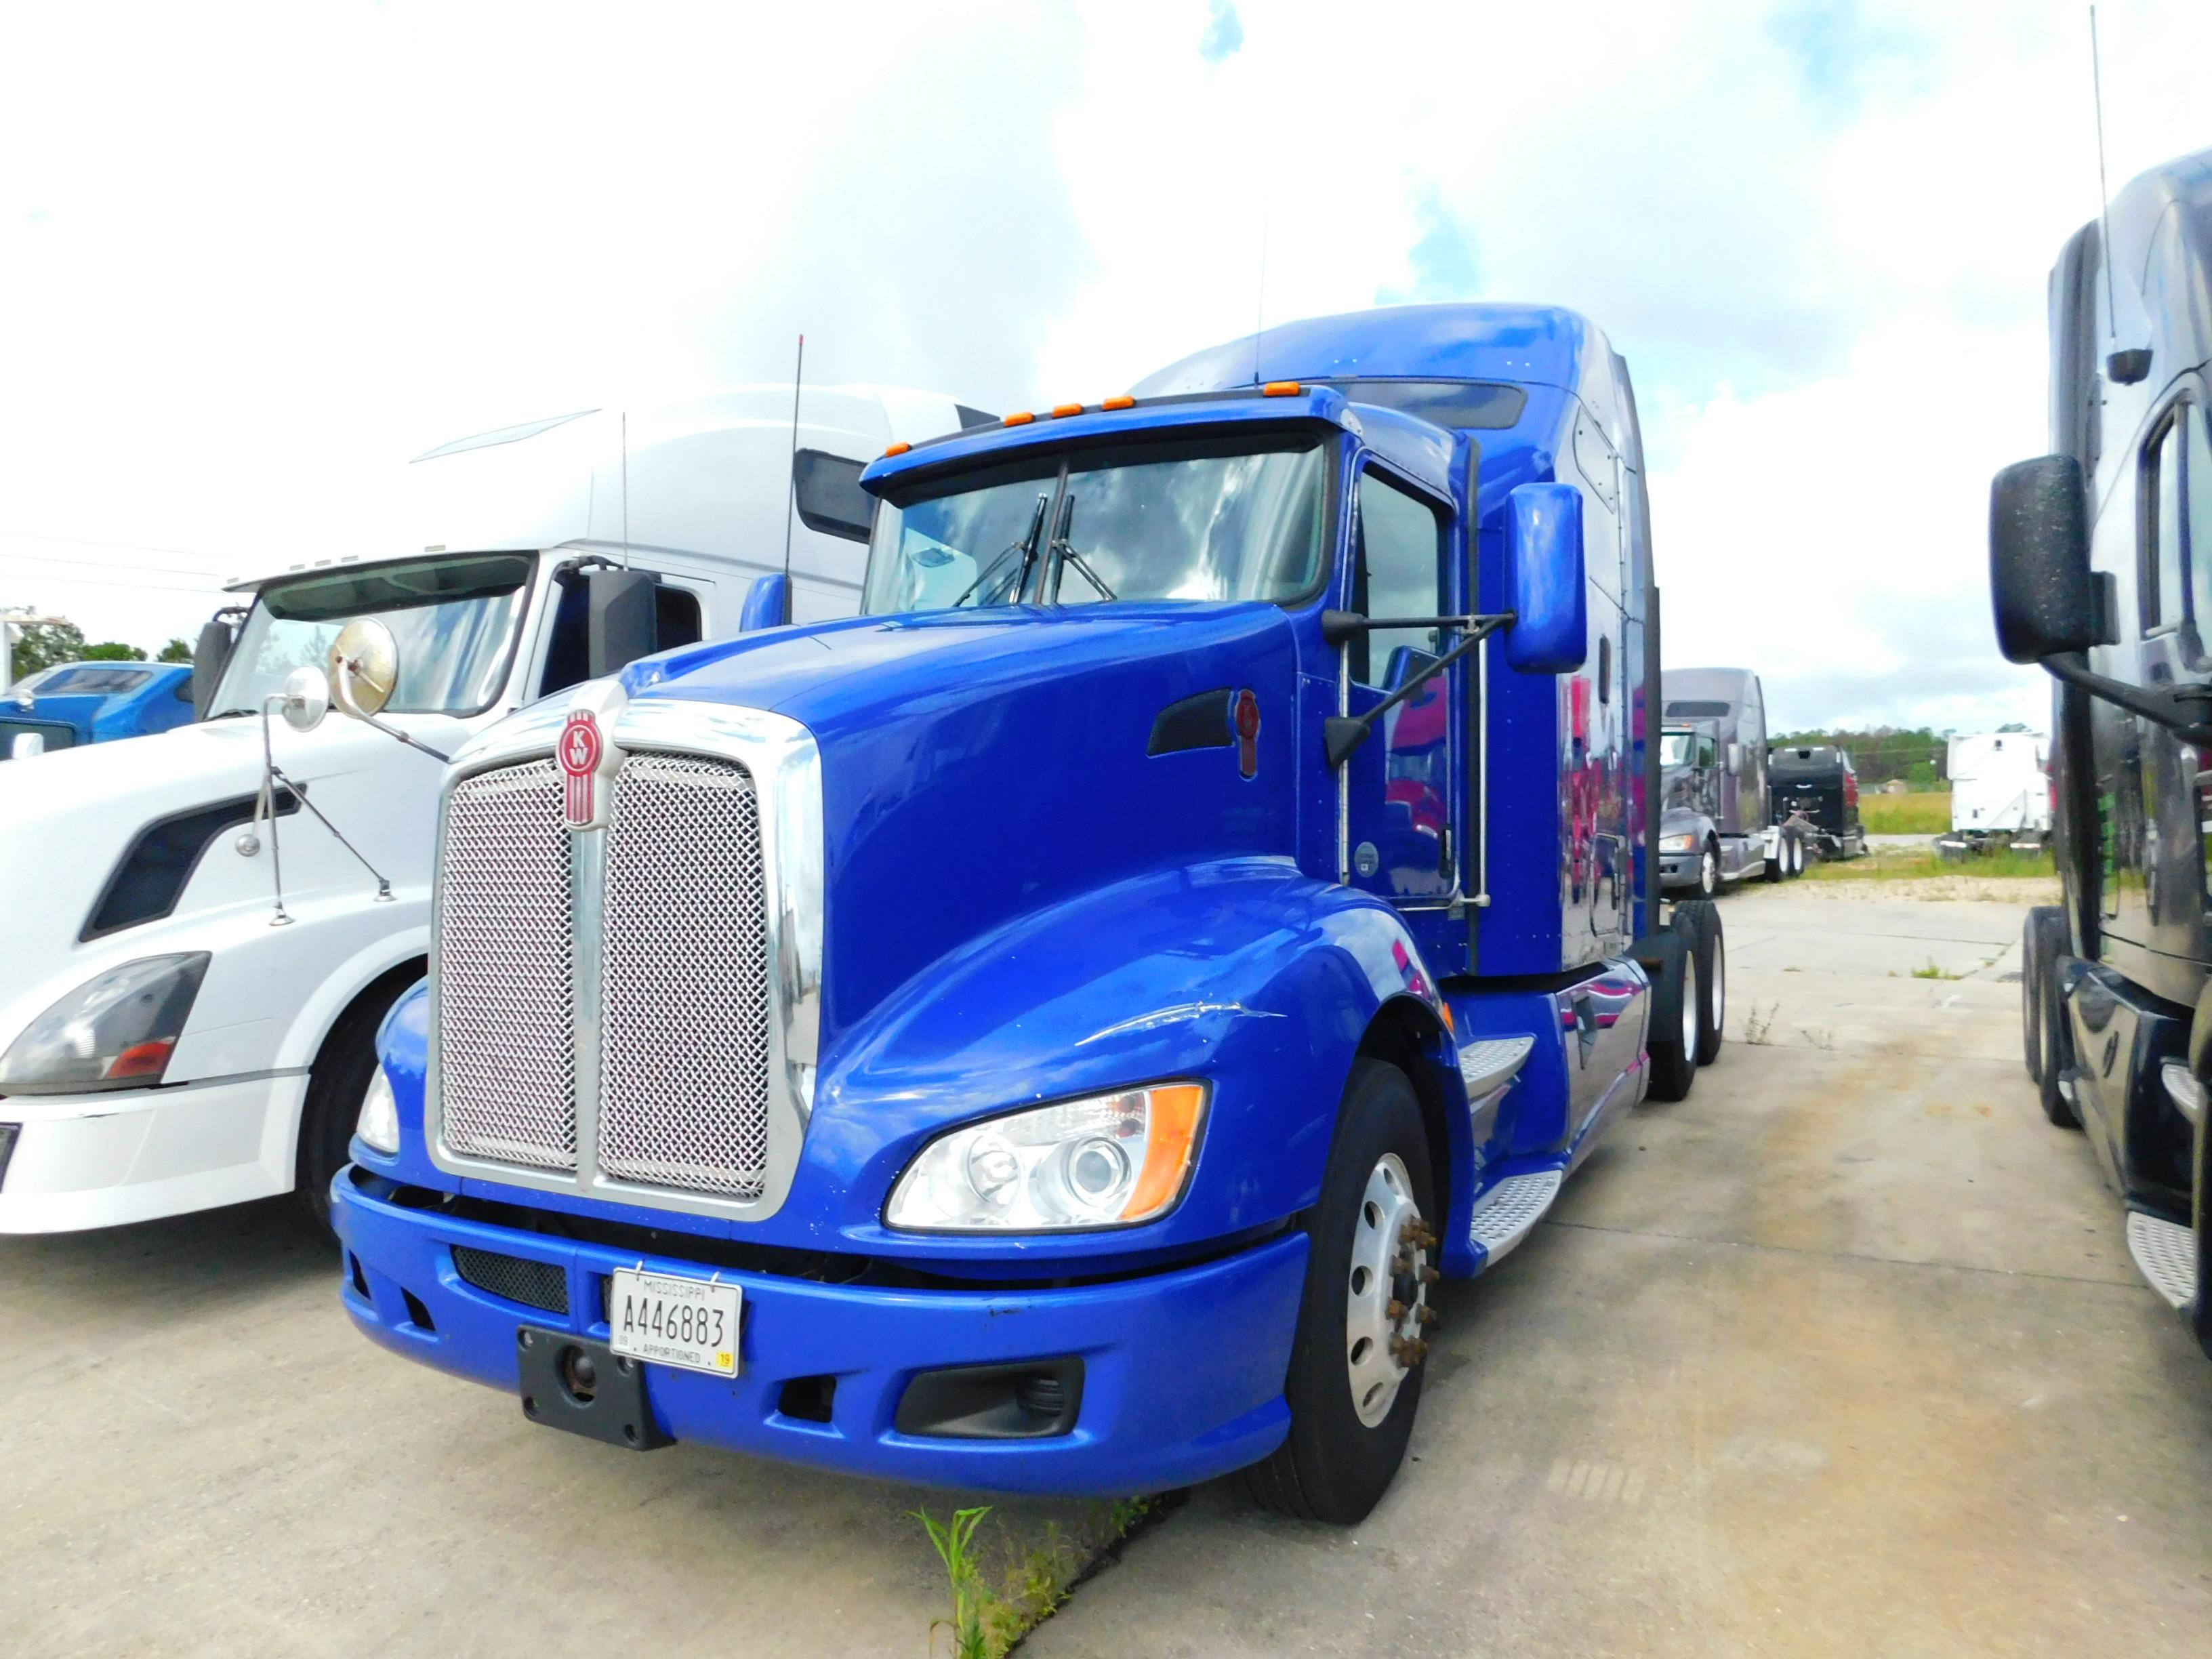 USED 2013 KENWORTH T660 SLEEPER TRUCK #82482